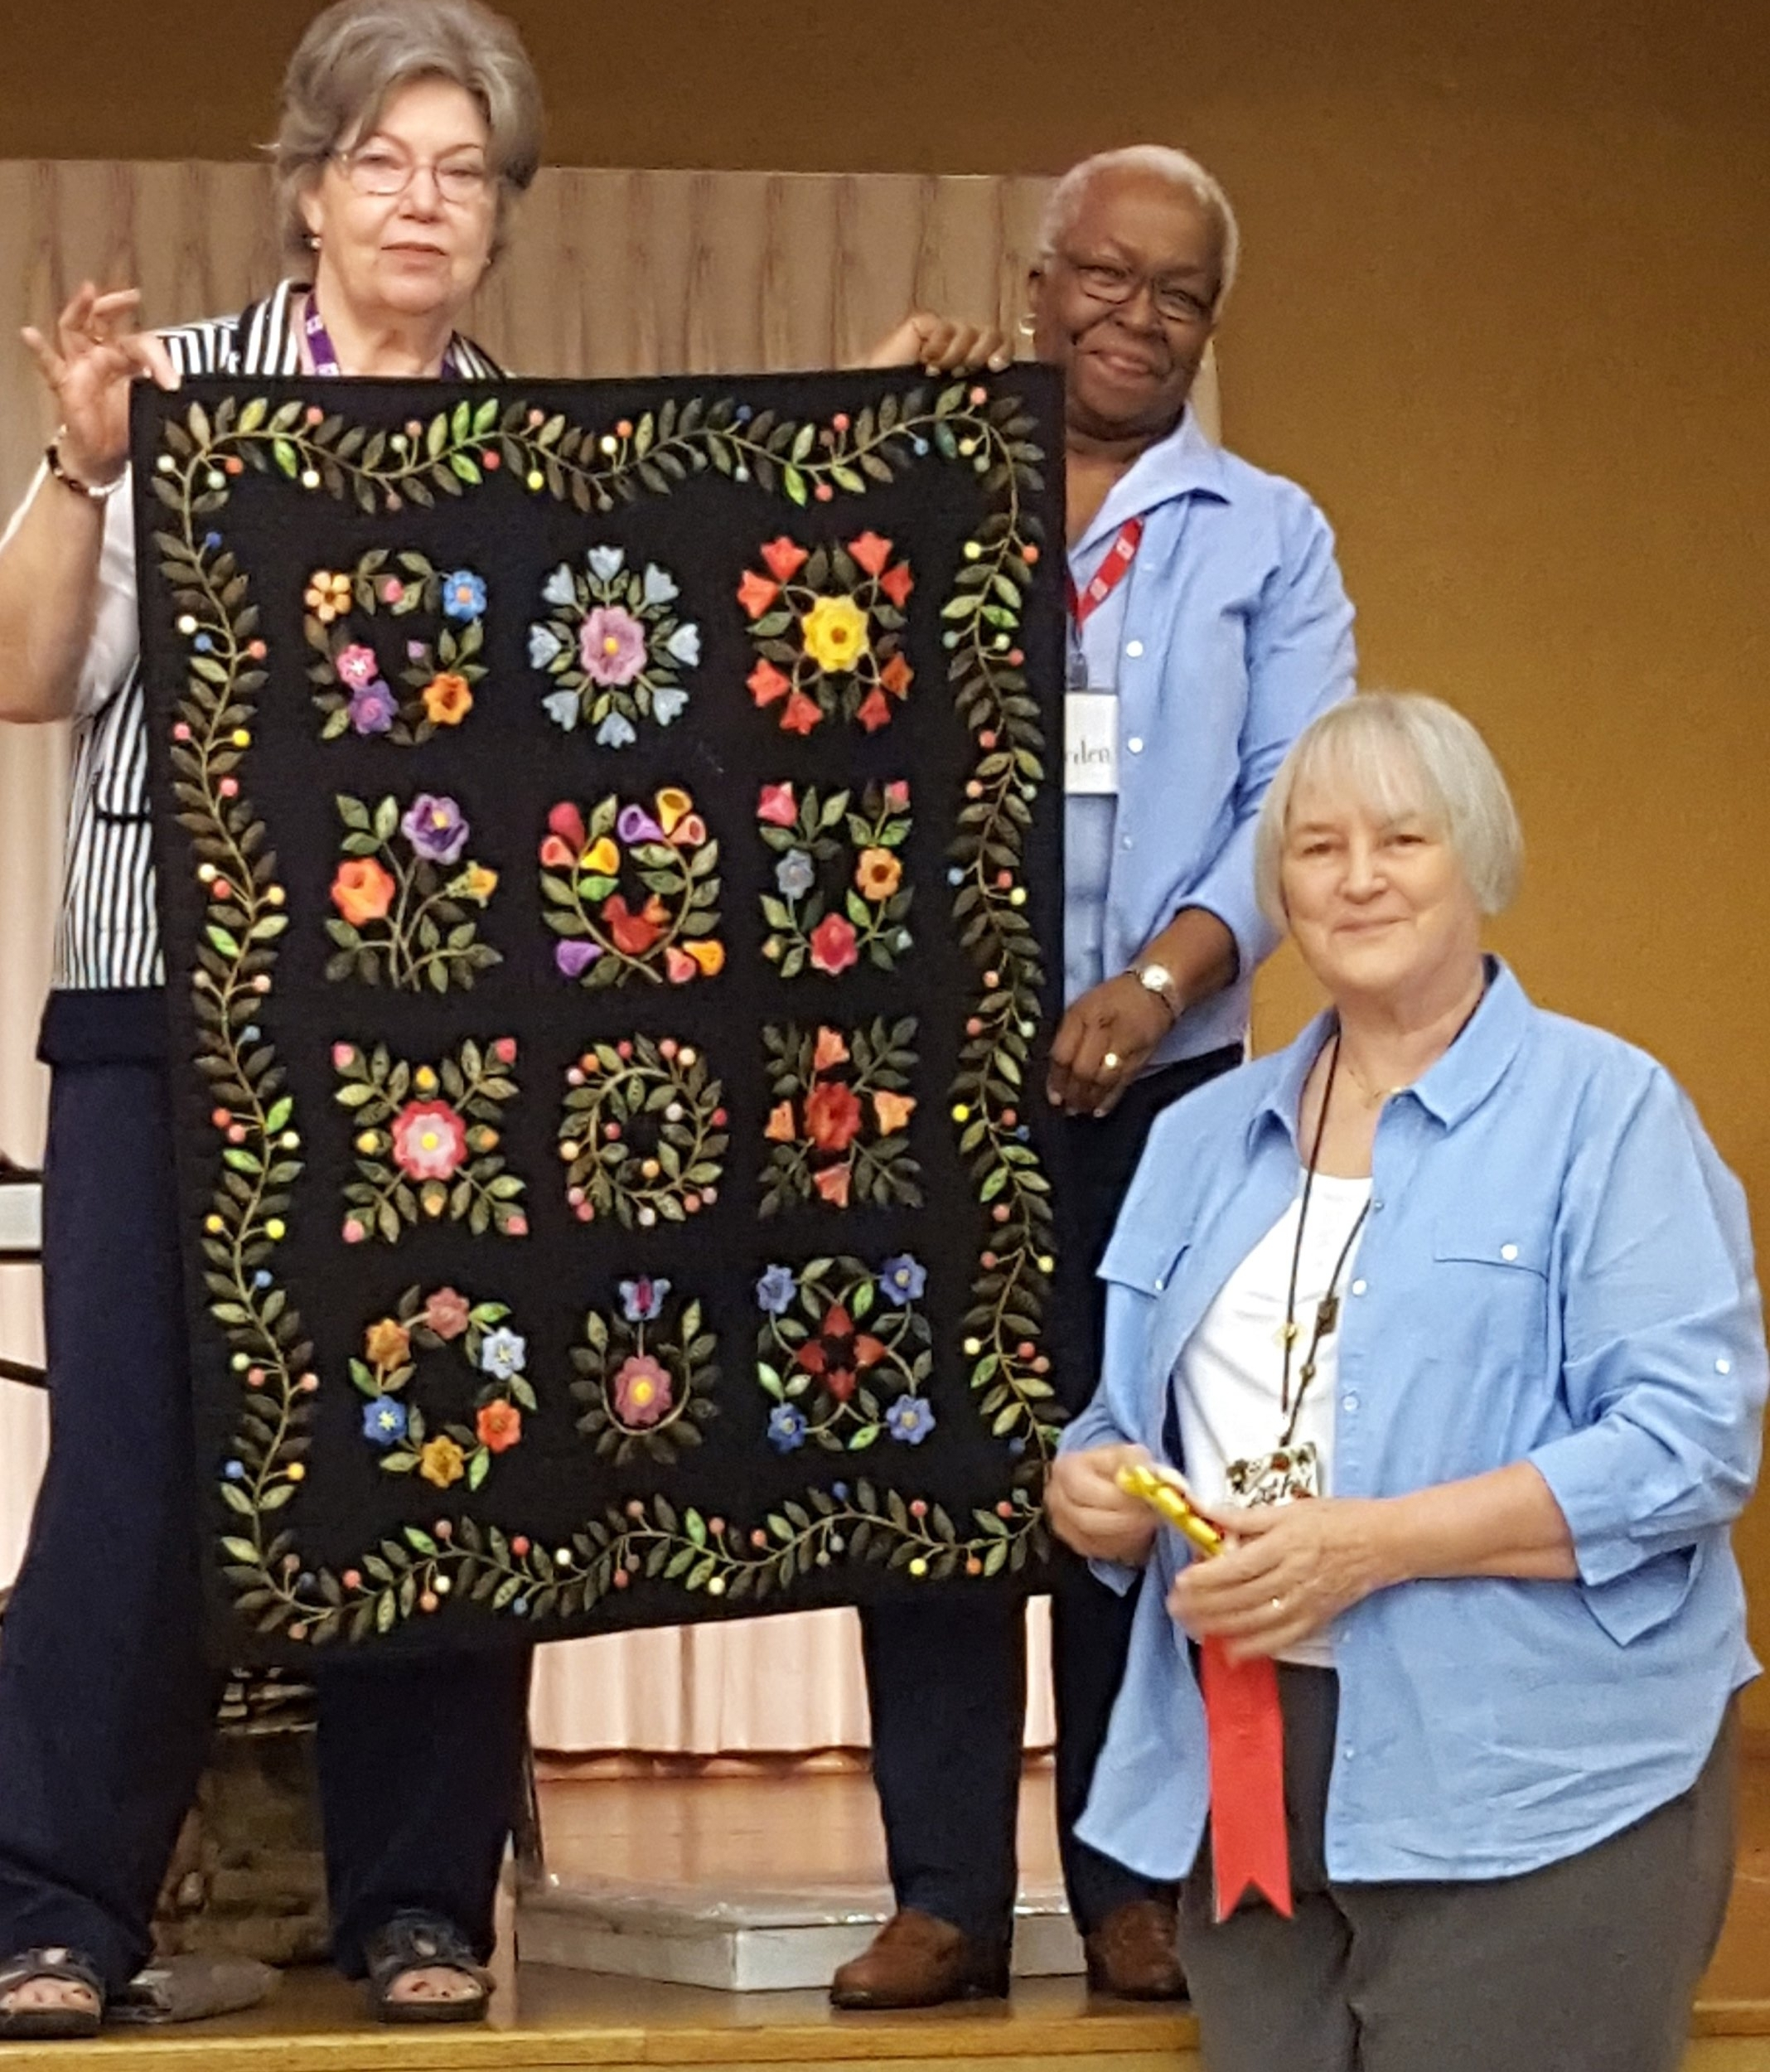 Kathy Gregory: Best Machine Quilted Small